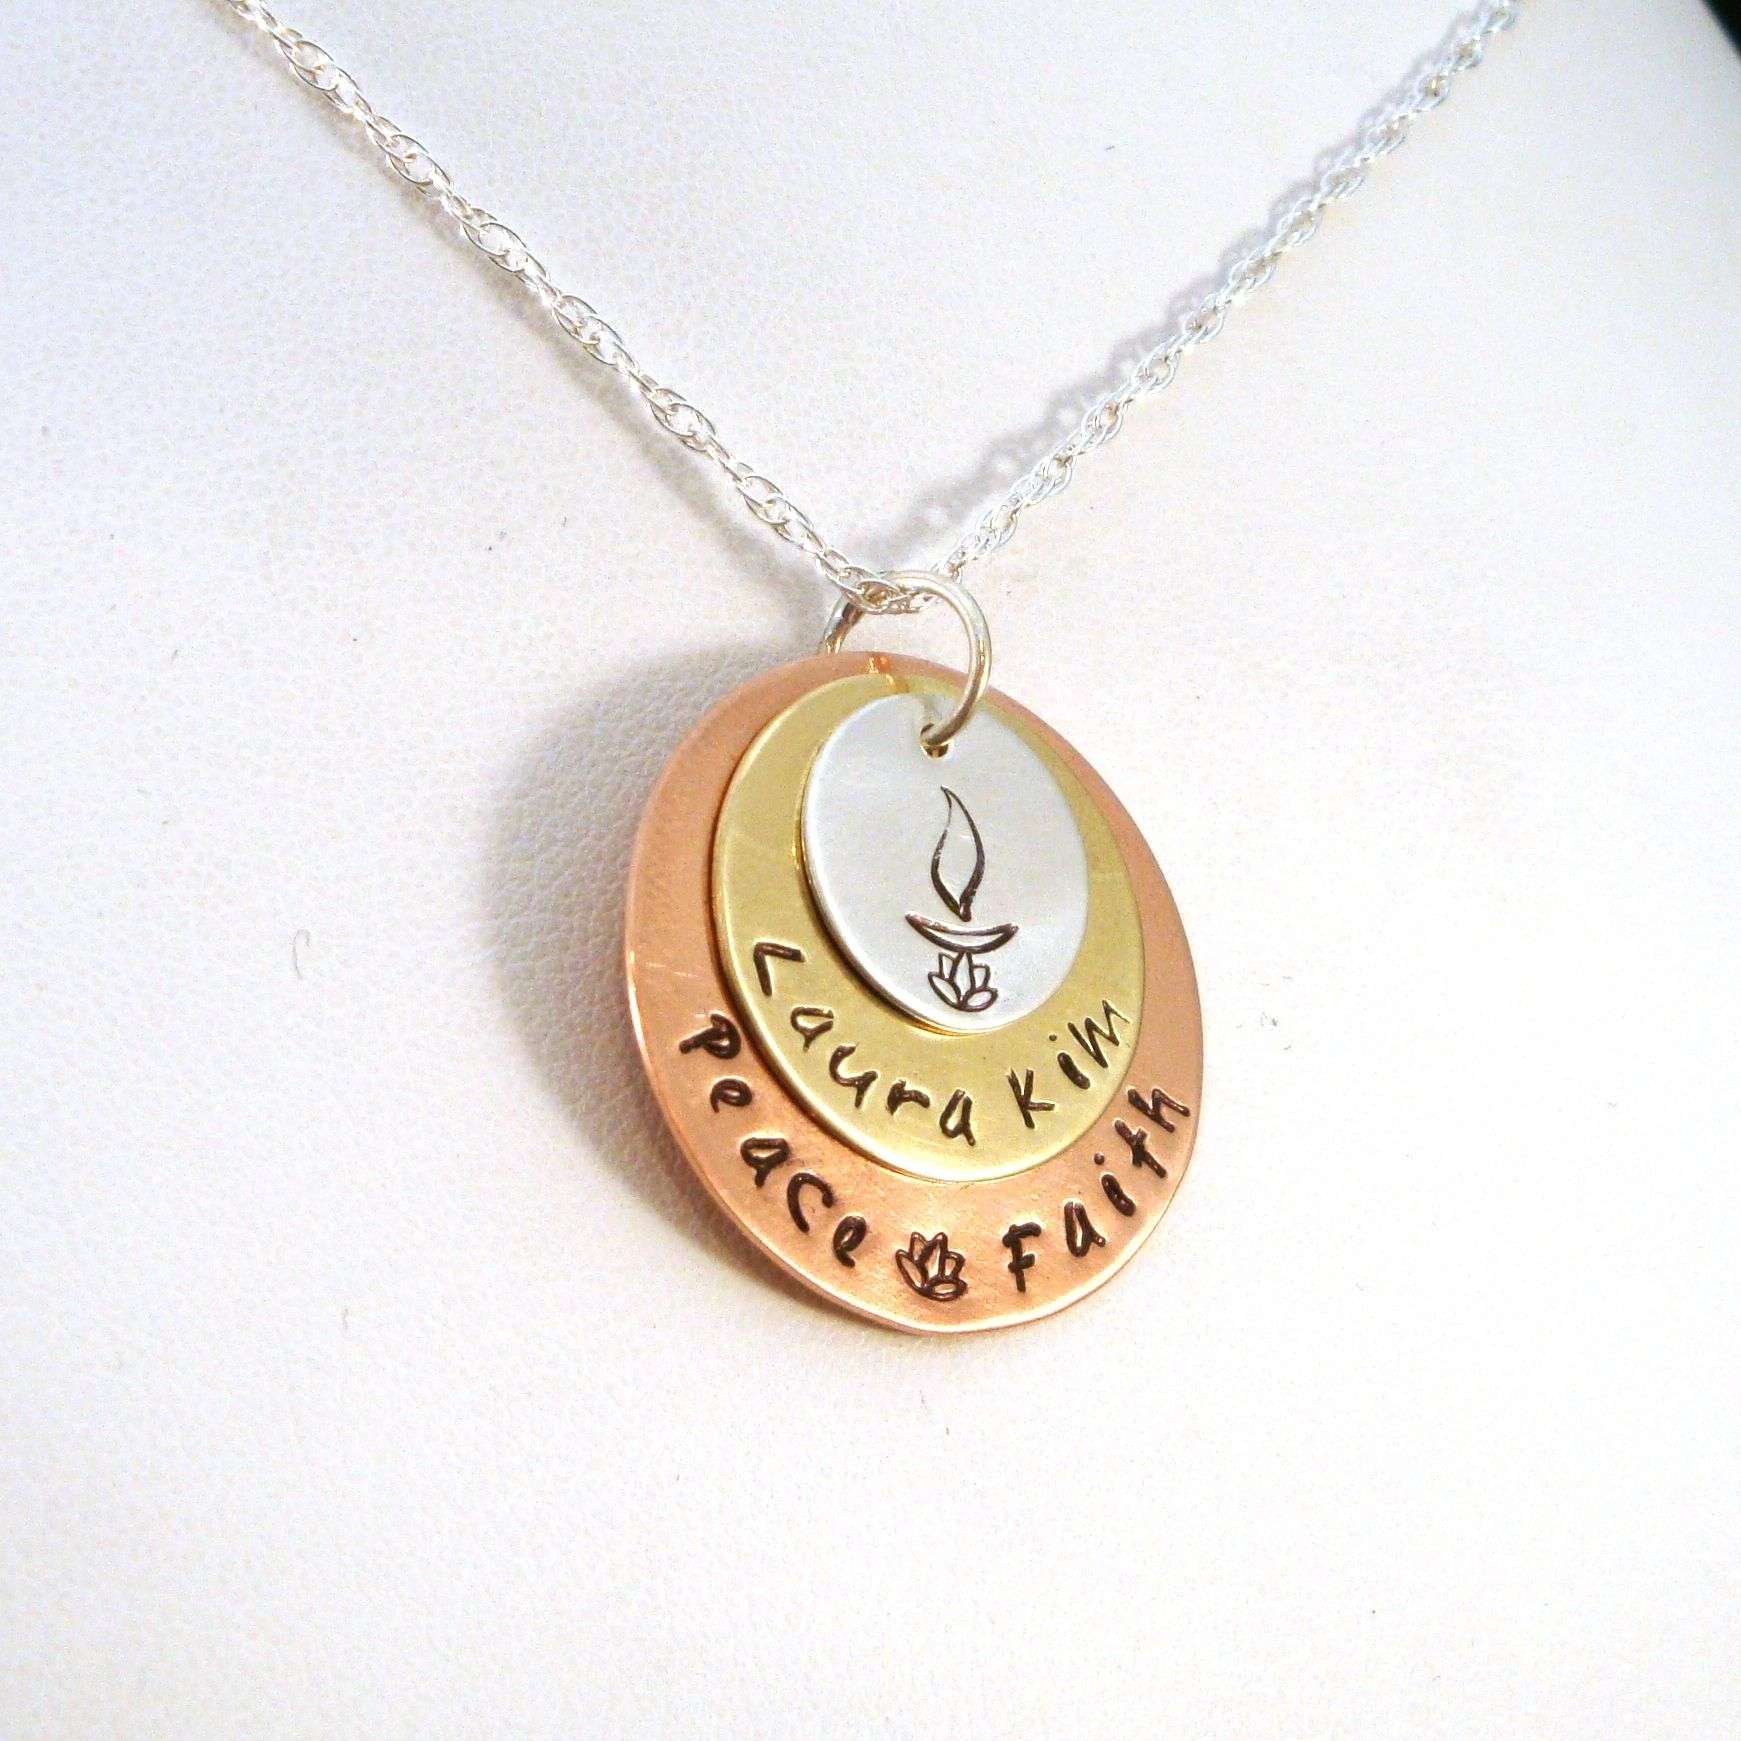 Mixed metal stack necklace with uu chalice family necklace uu i love personalizing unitarian universalist chalice jewelry i love the lotus theme aloadofball Gallery